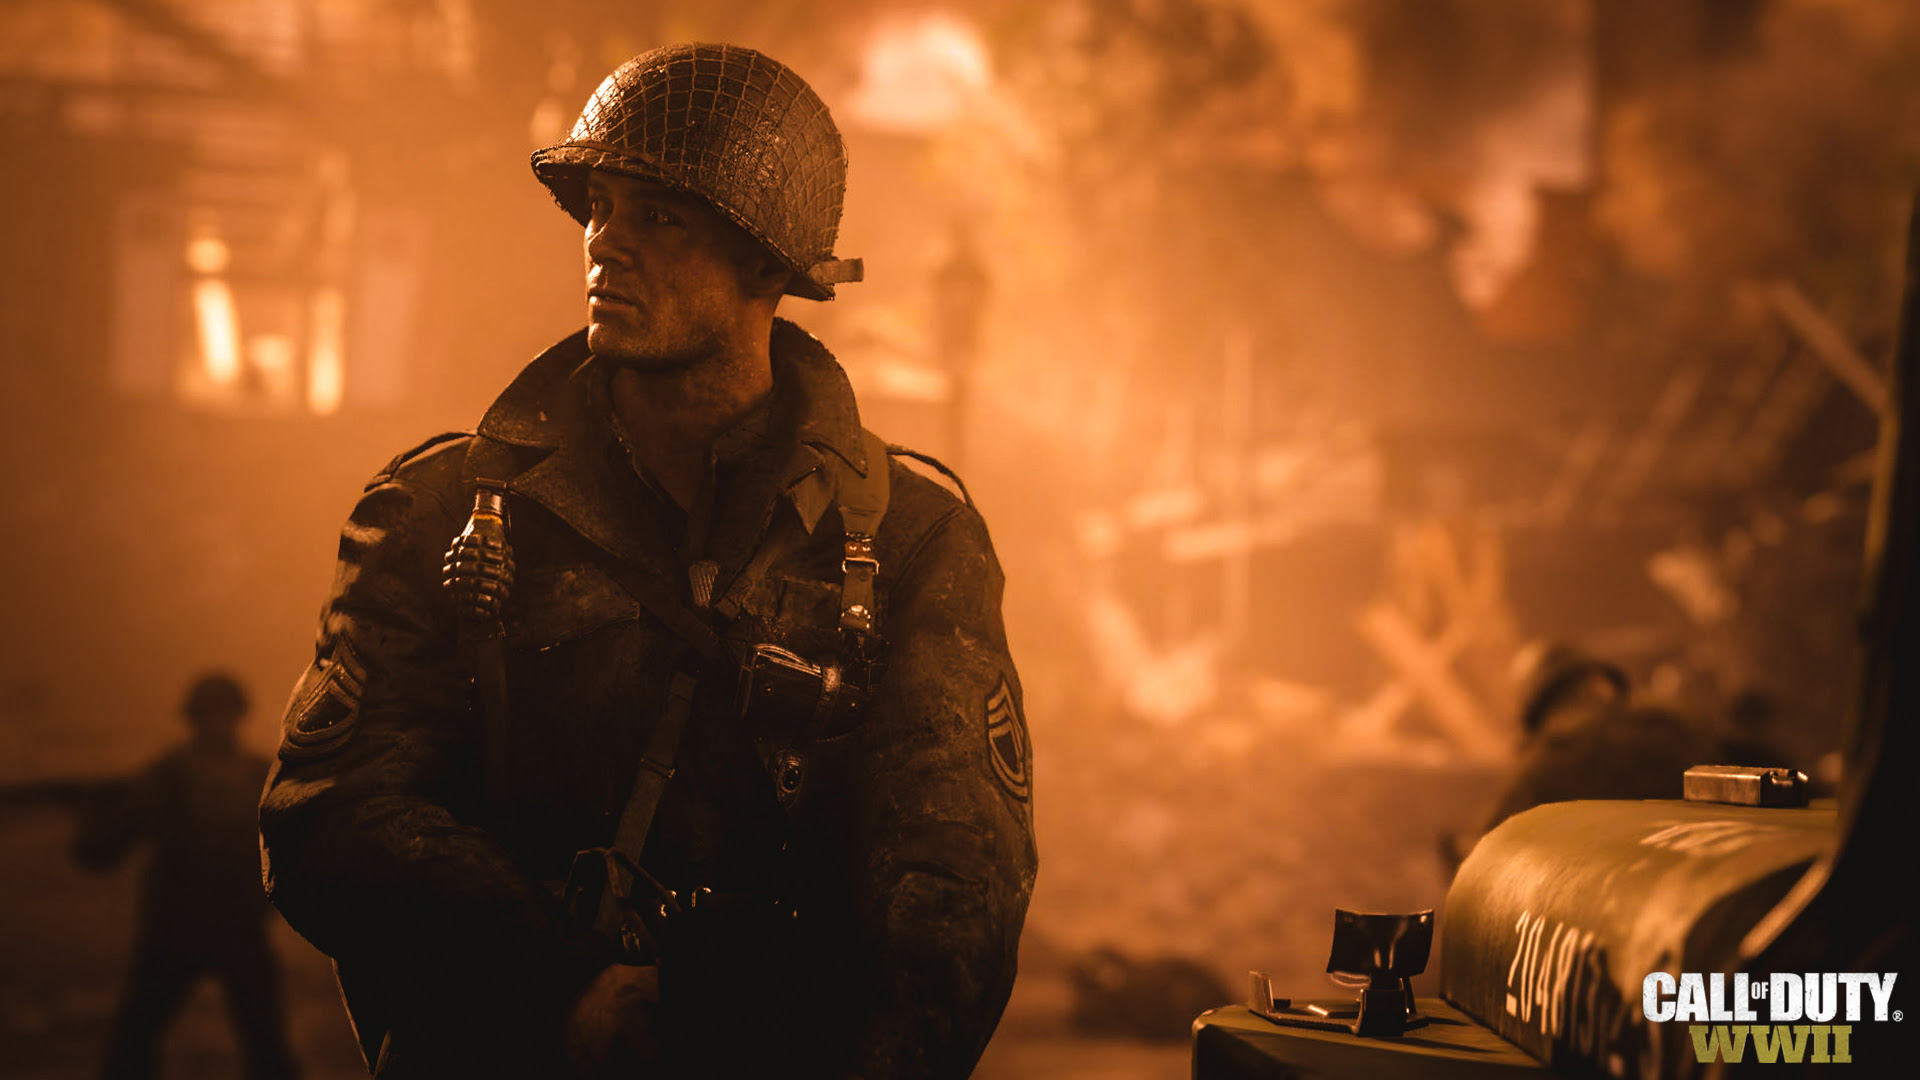 Call of Duty WWII révèle son premier trailer vertigineux